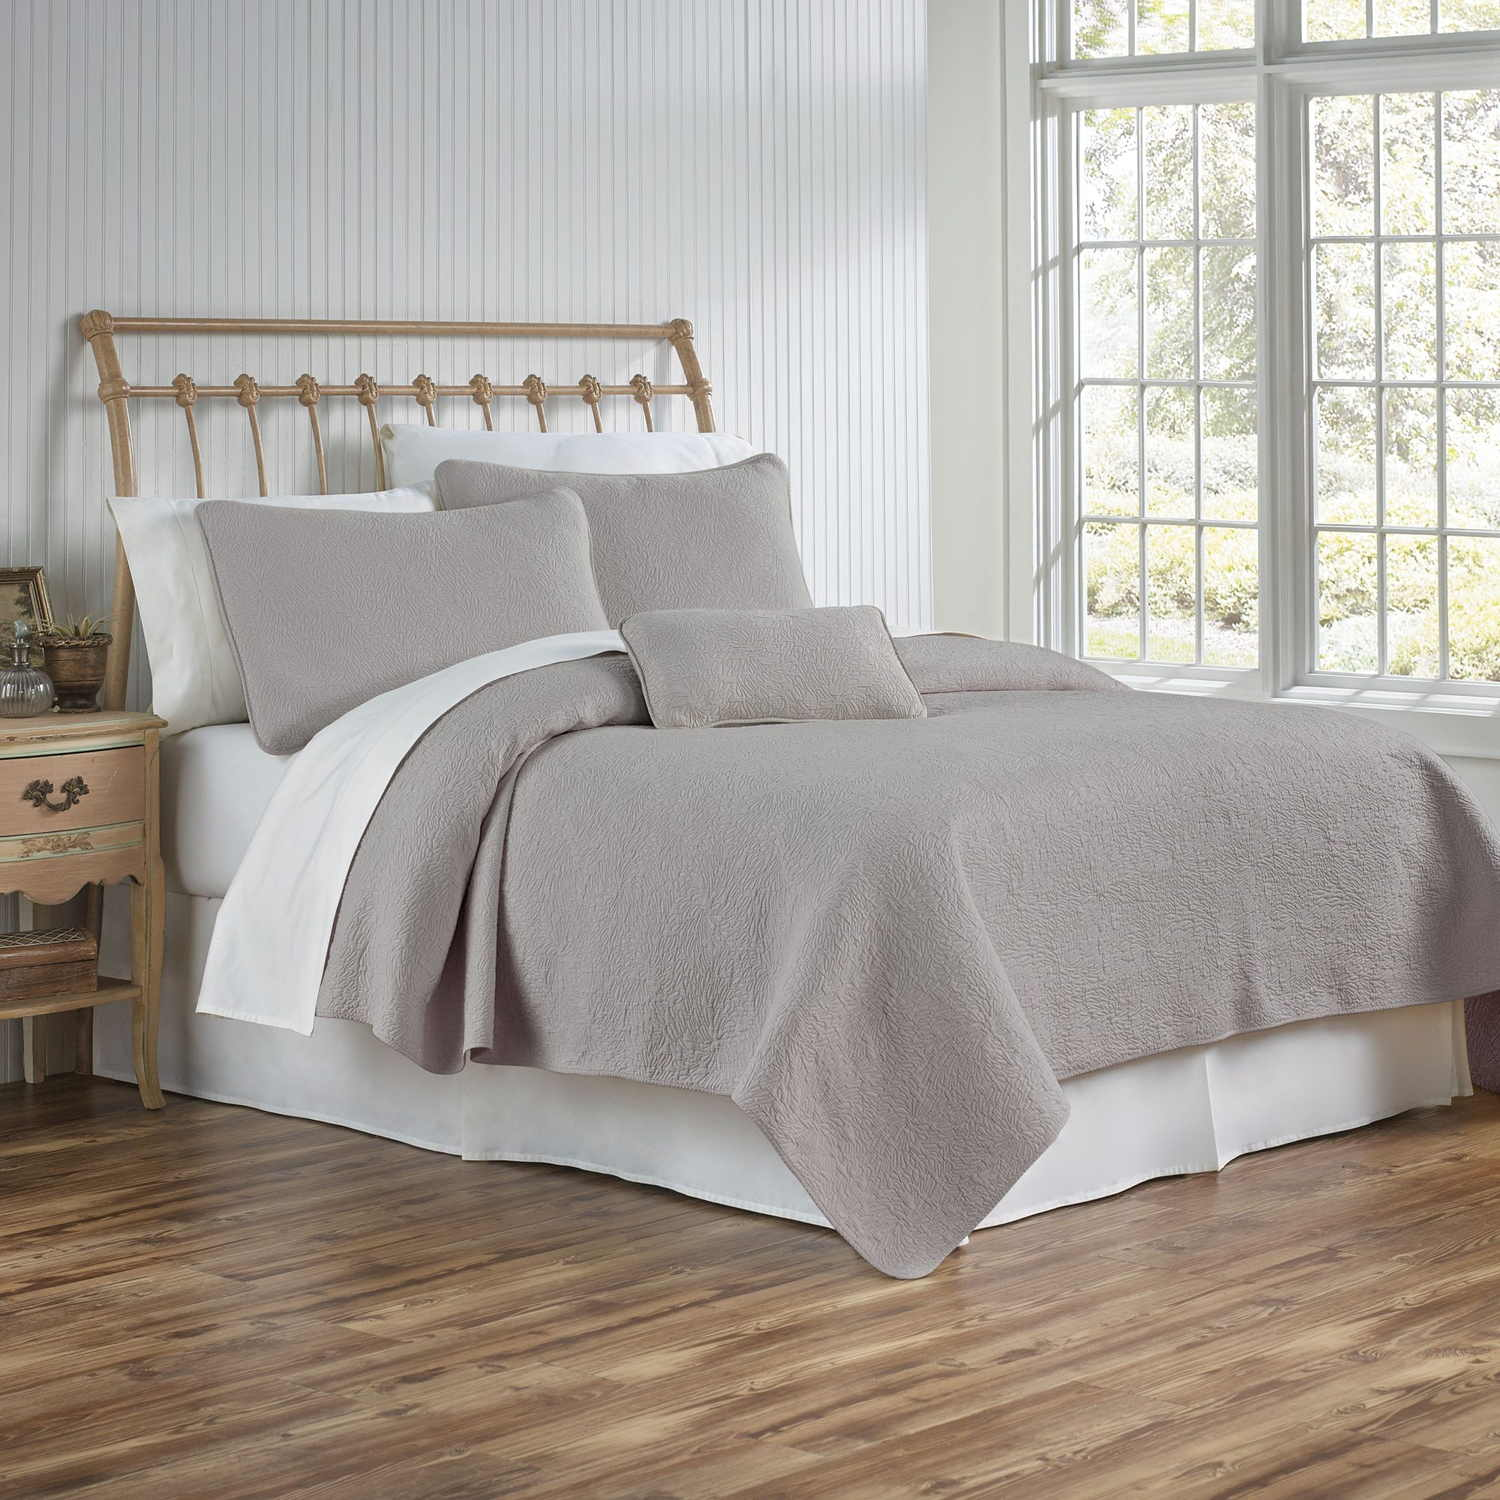 Traditions Linens Bedding Couture Coverlet